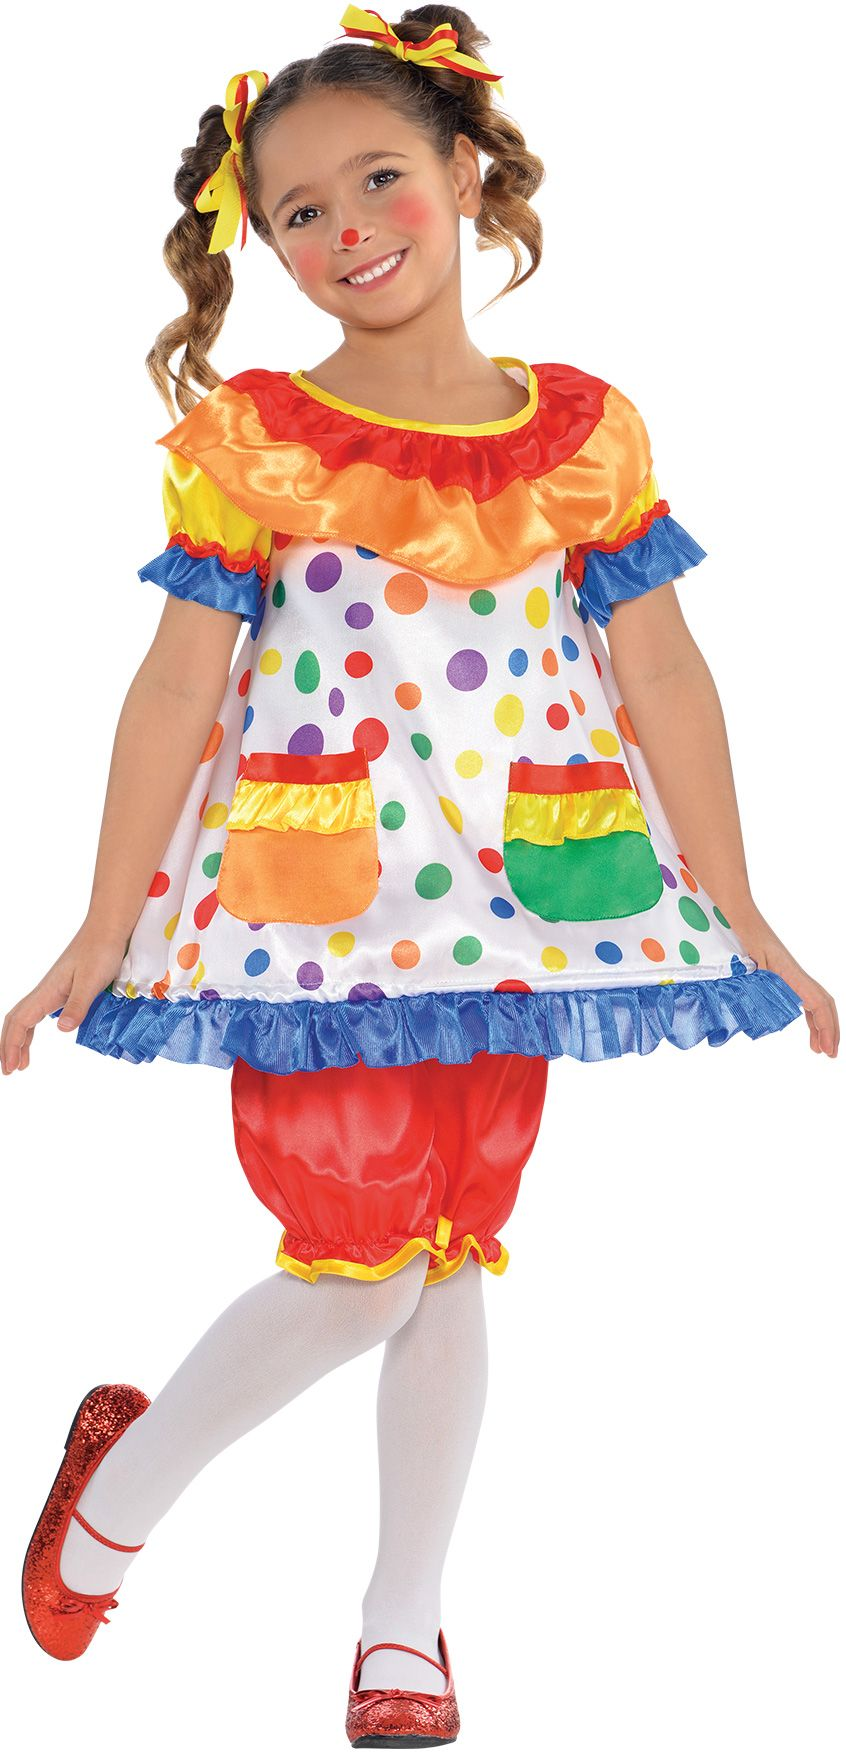 Create Your Own Girls Clown Costume Accessories Party City